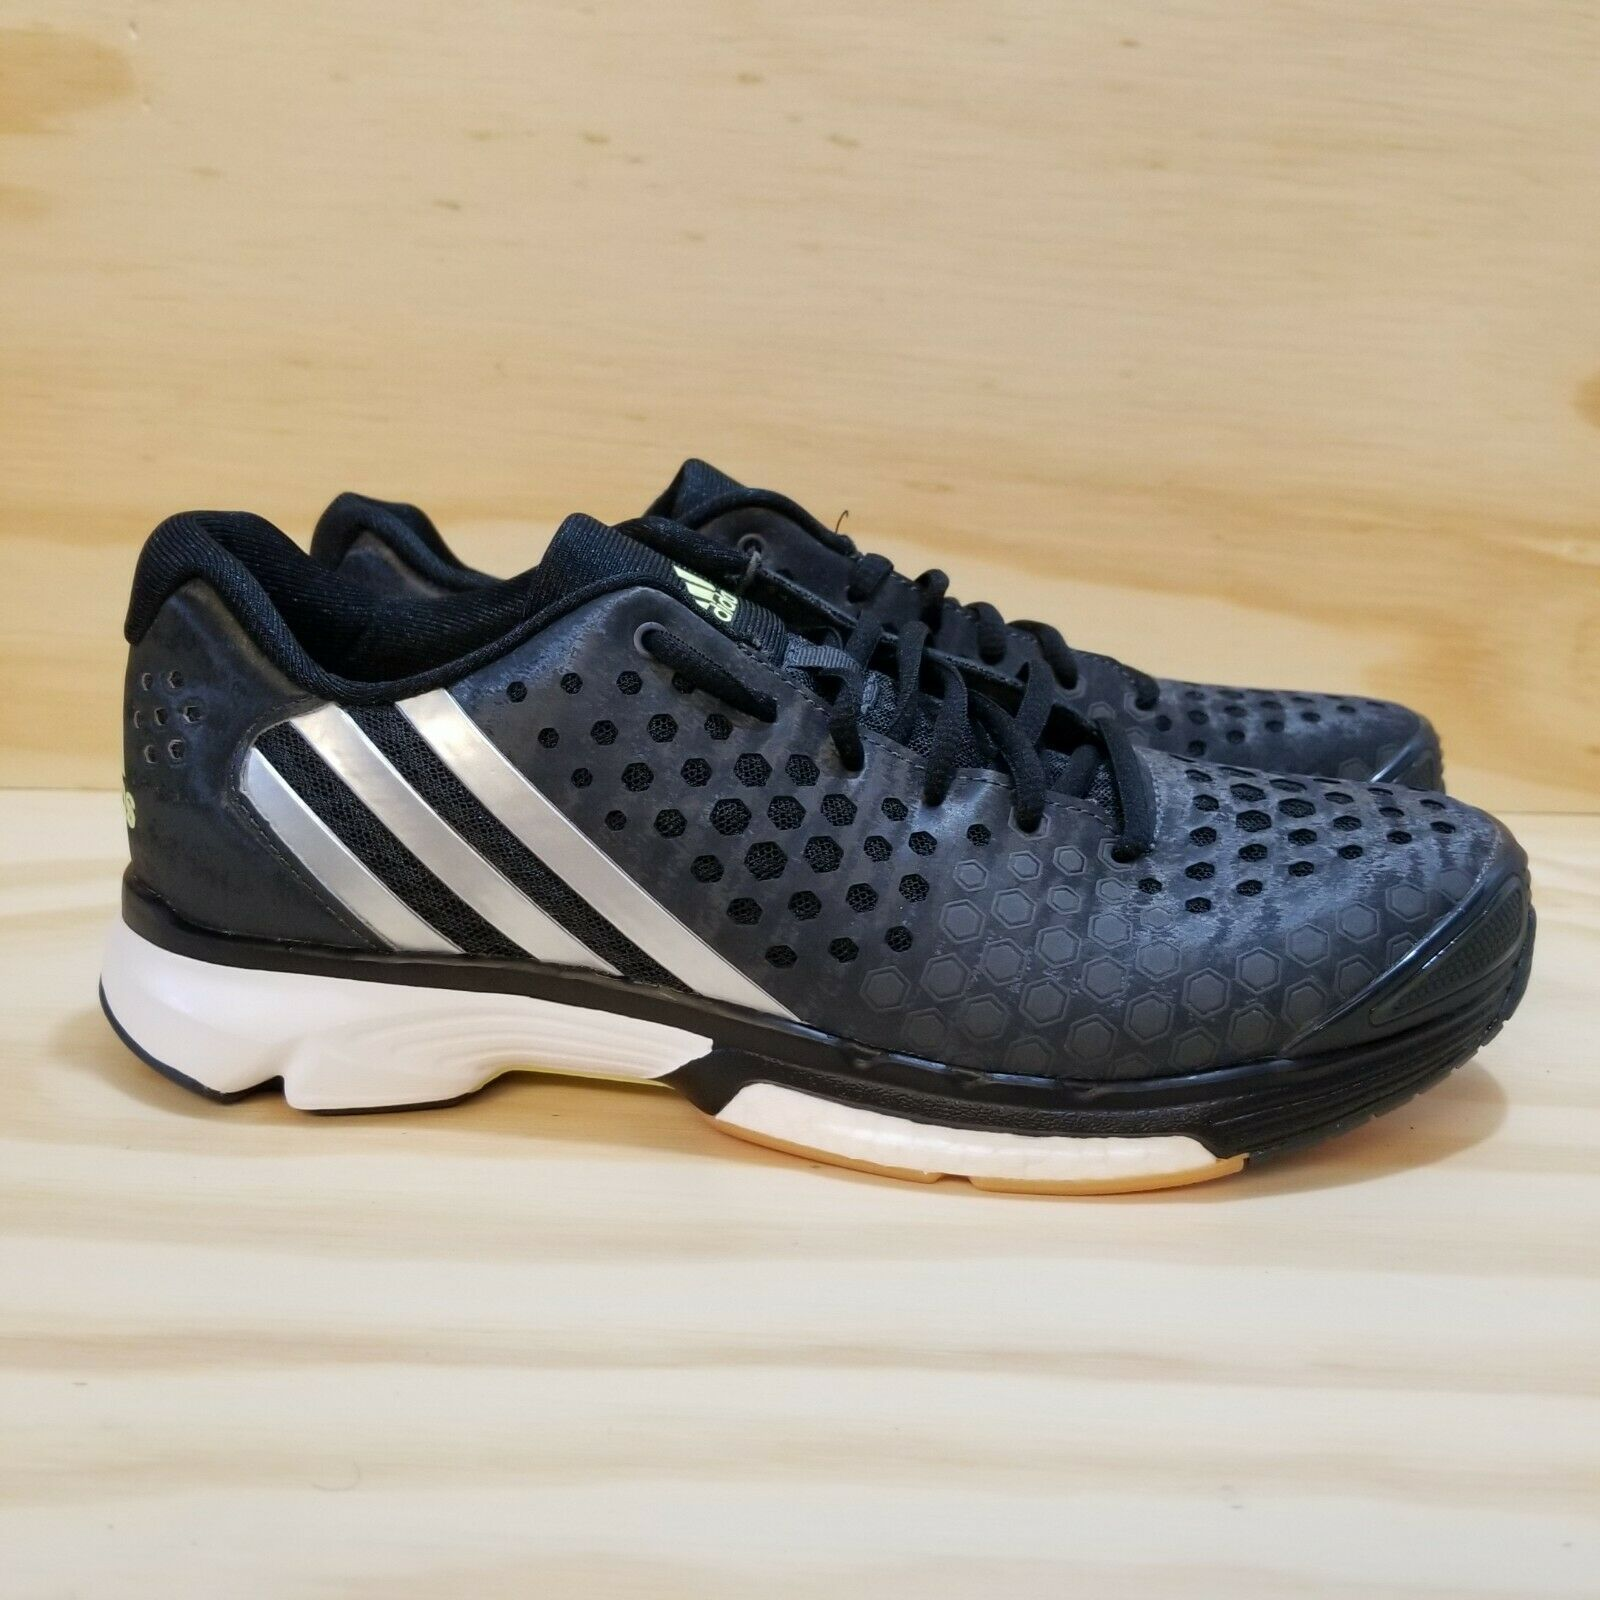 NEW Adidas Size 8.5 Women Athletic Sneakers Black White Shoes Laces Silver (NEW)